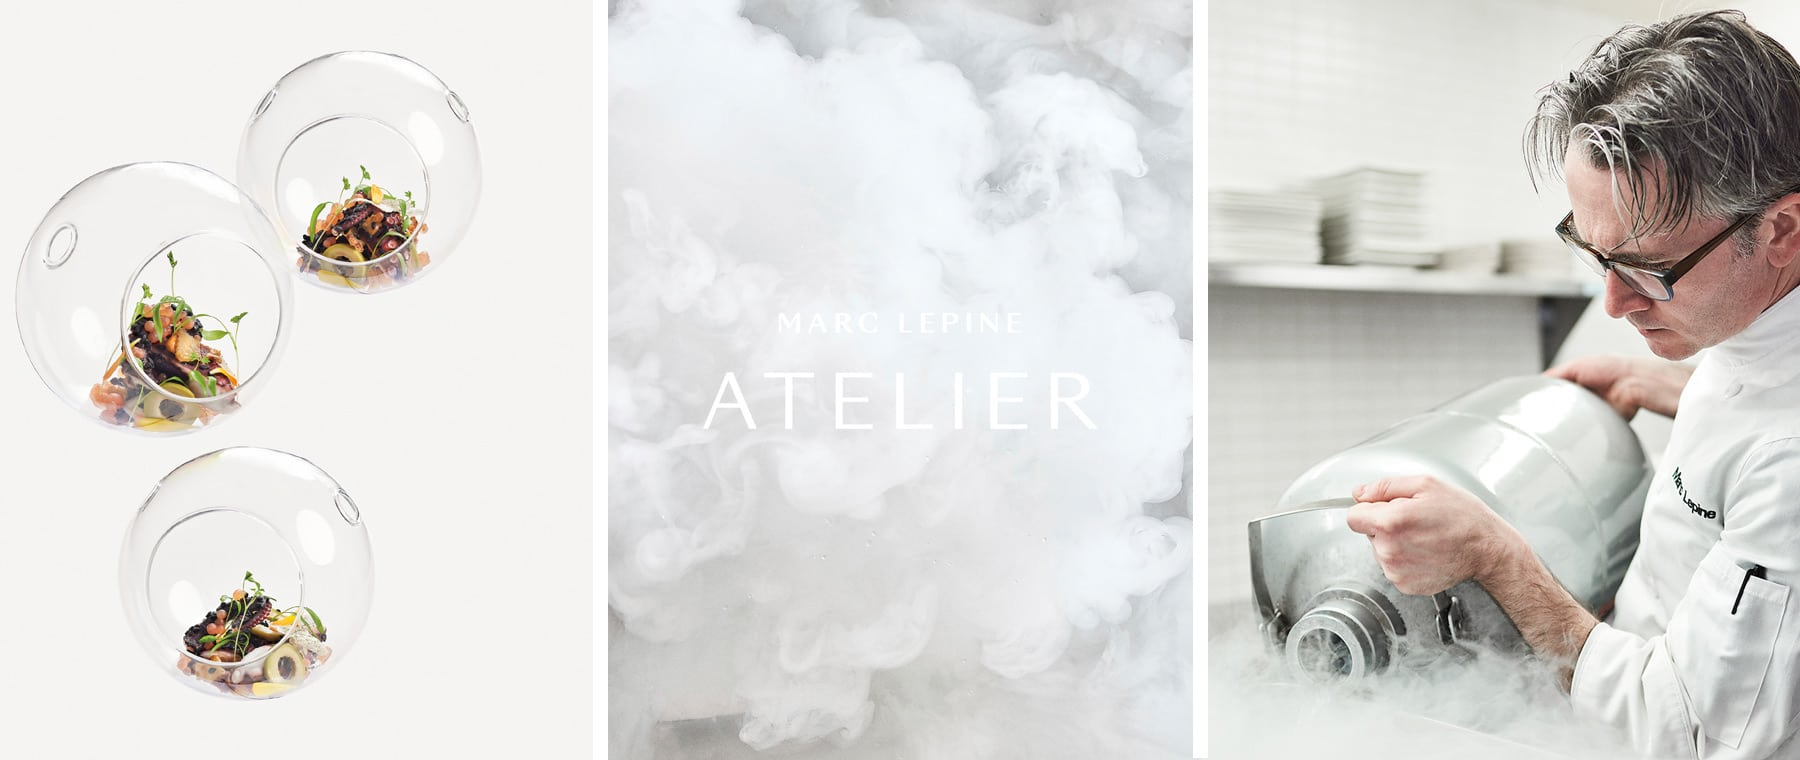 Ottawa chef Marc Lepine reveals his culinary secrets in Atelier: The Cookbook